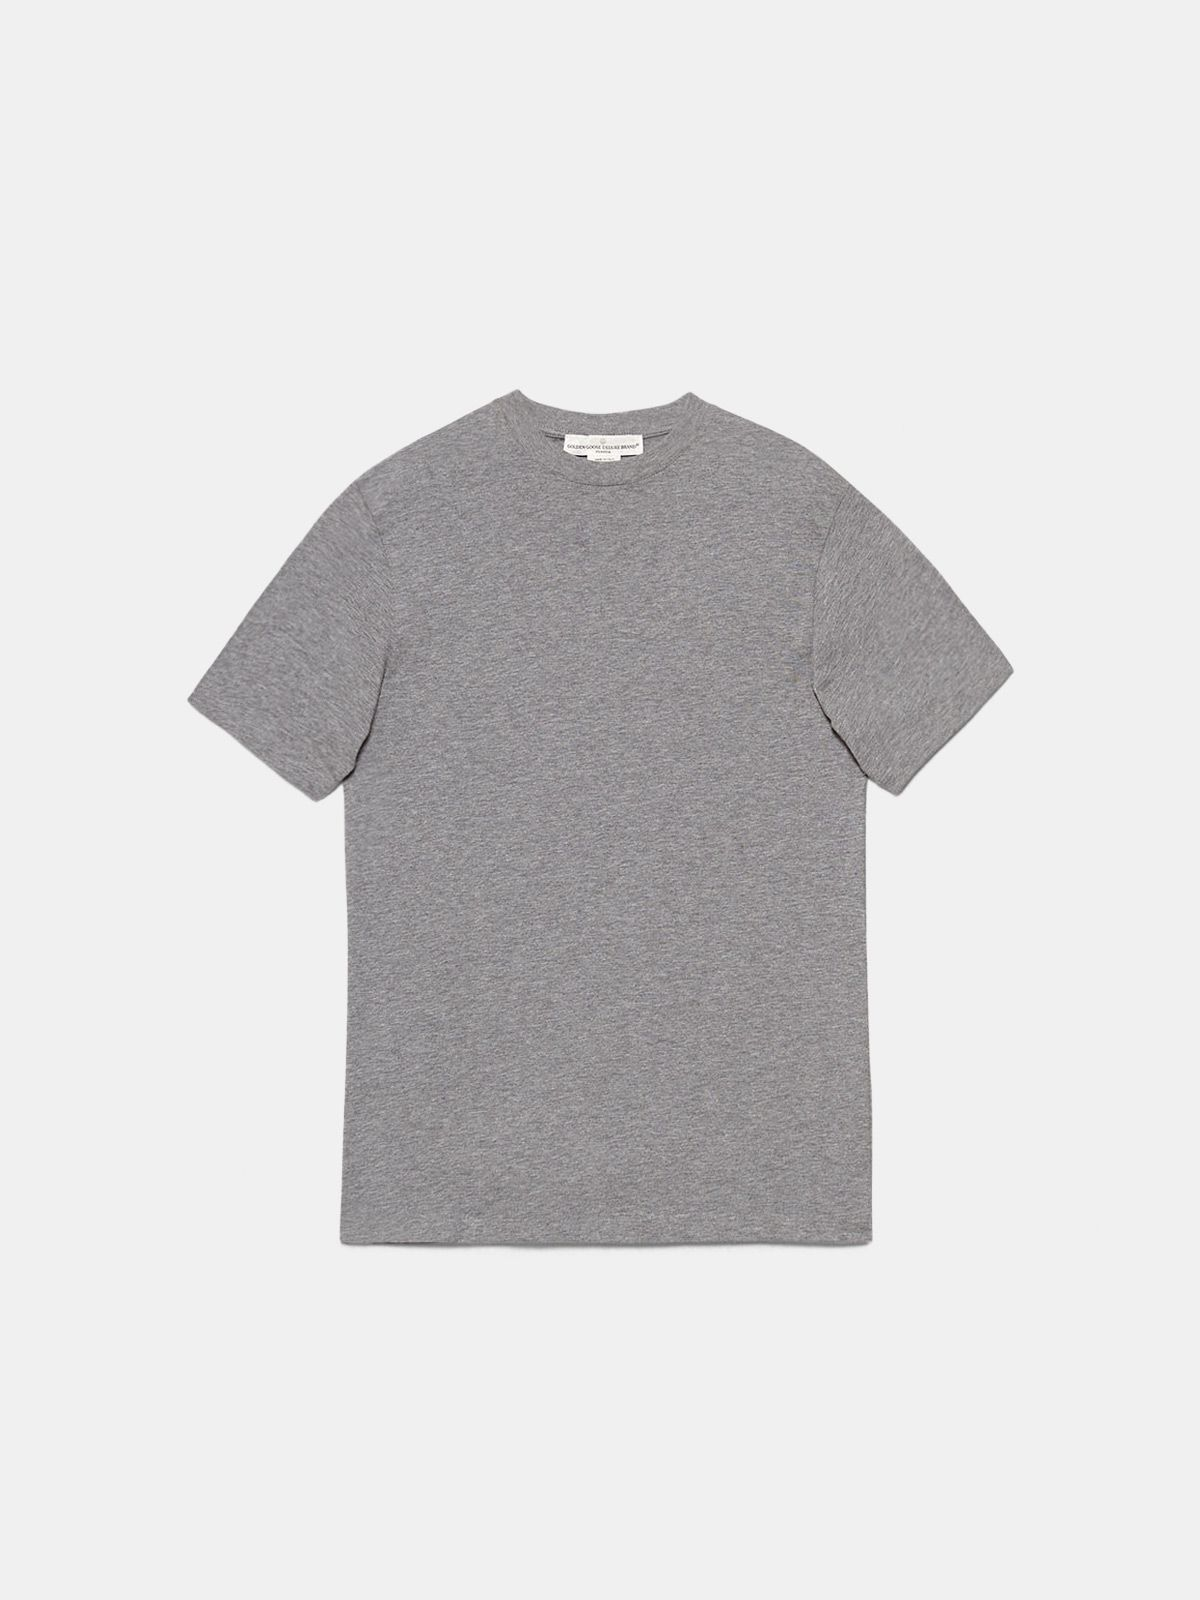 Golden Goose - Grey Golden T-shirt with Sneakers Lovers print in